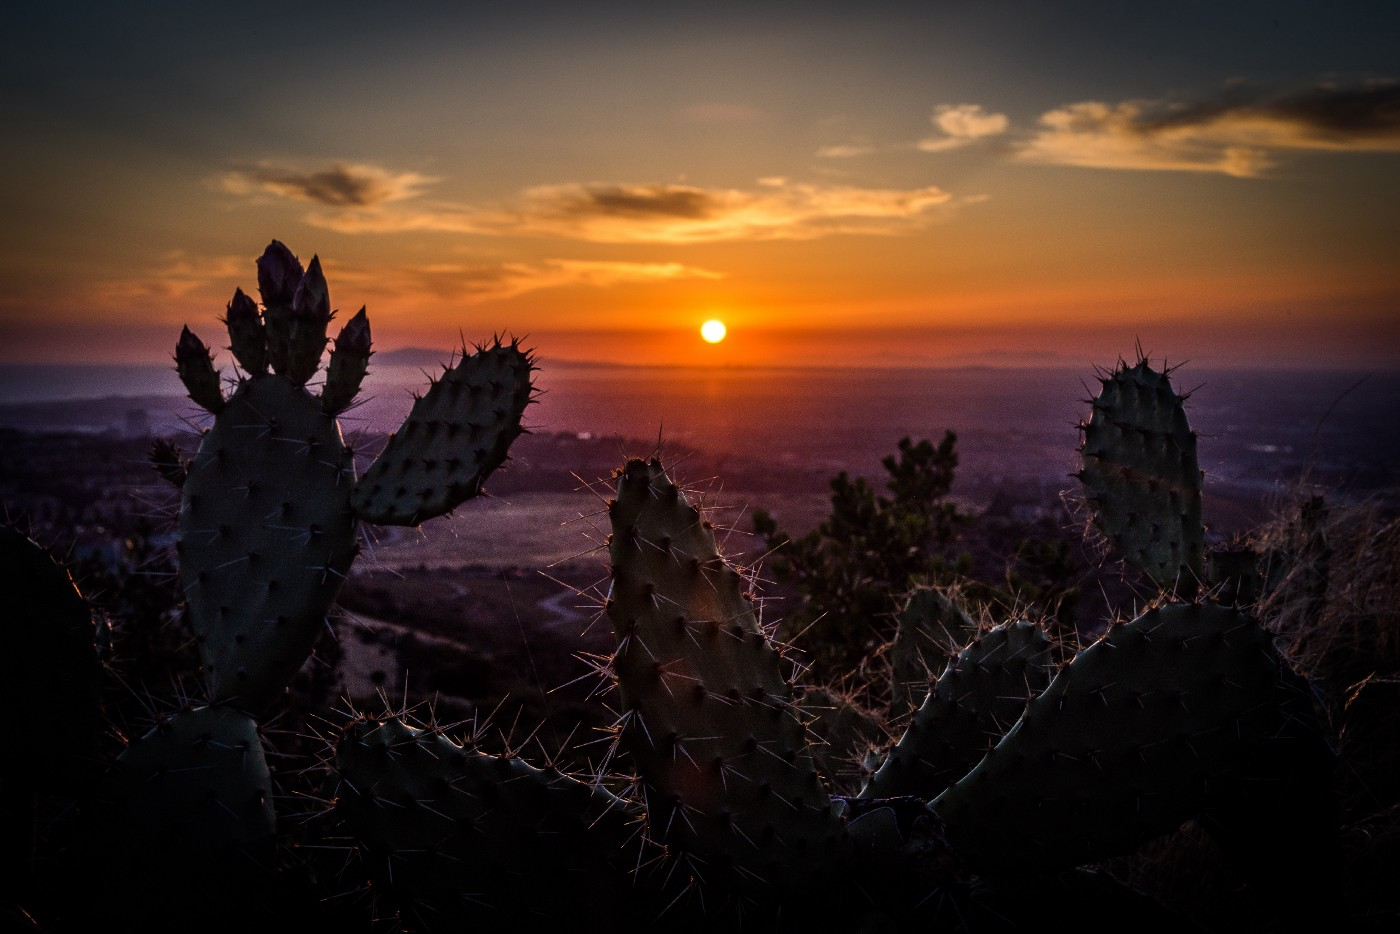 Sunset in the Southwest with cactii and orange skies and clouds.